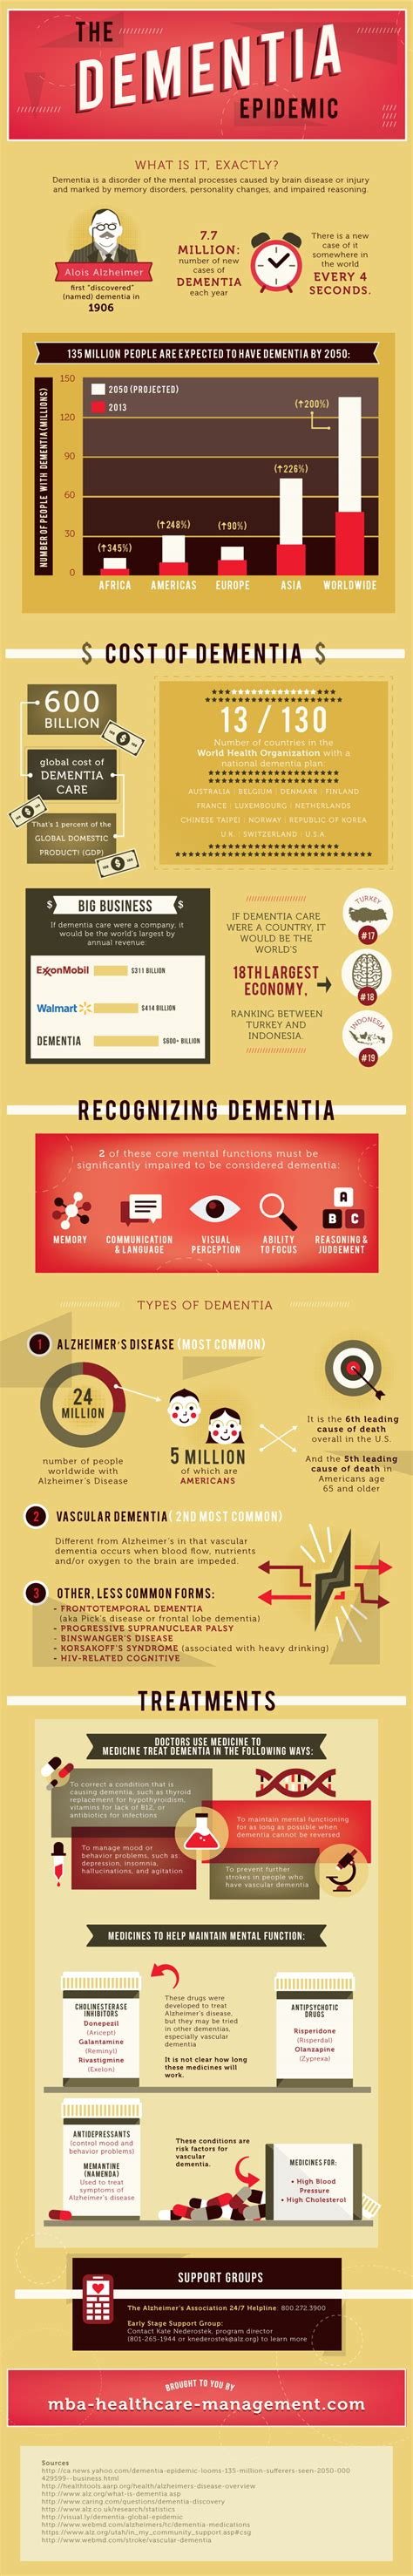 Free Mba In Healthcare Management by The Dementia Epidemic At A Glance And The Future